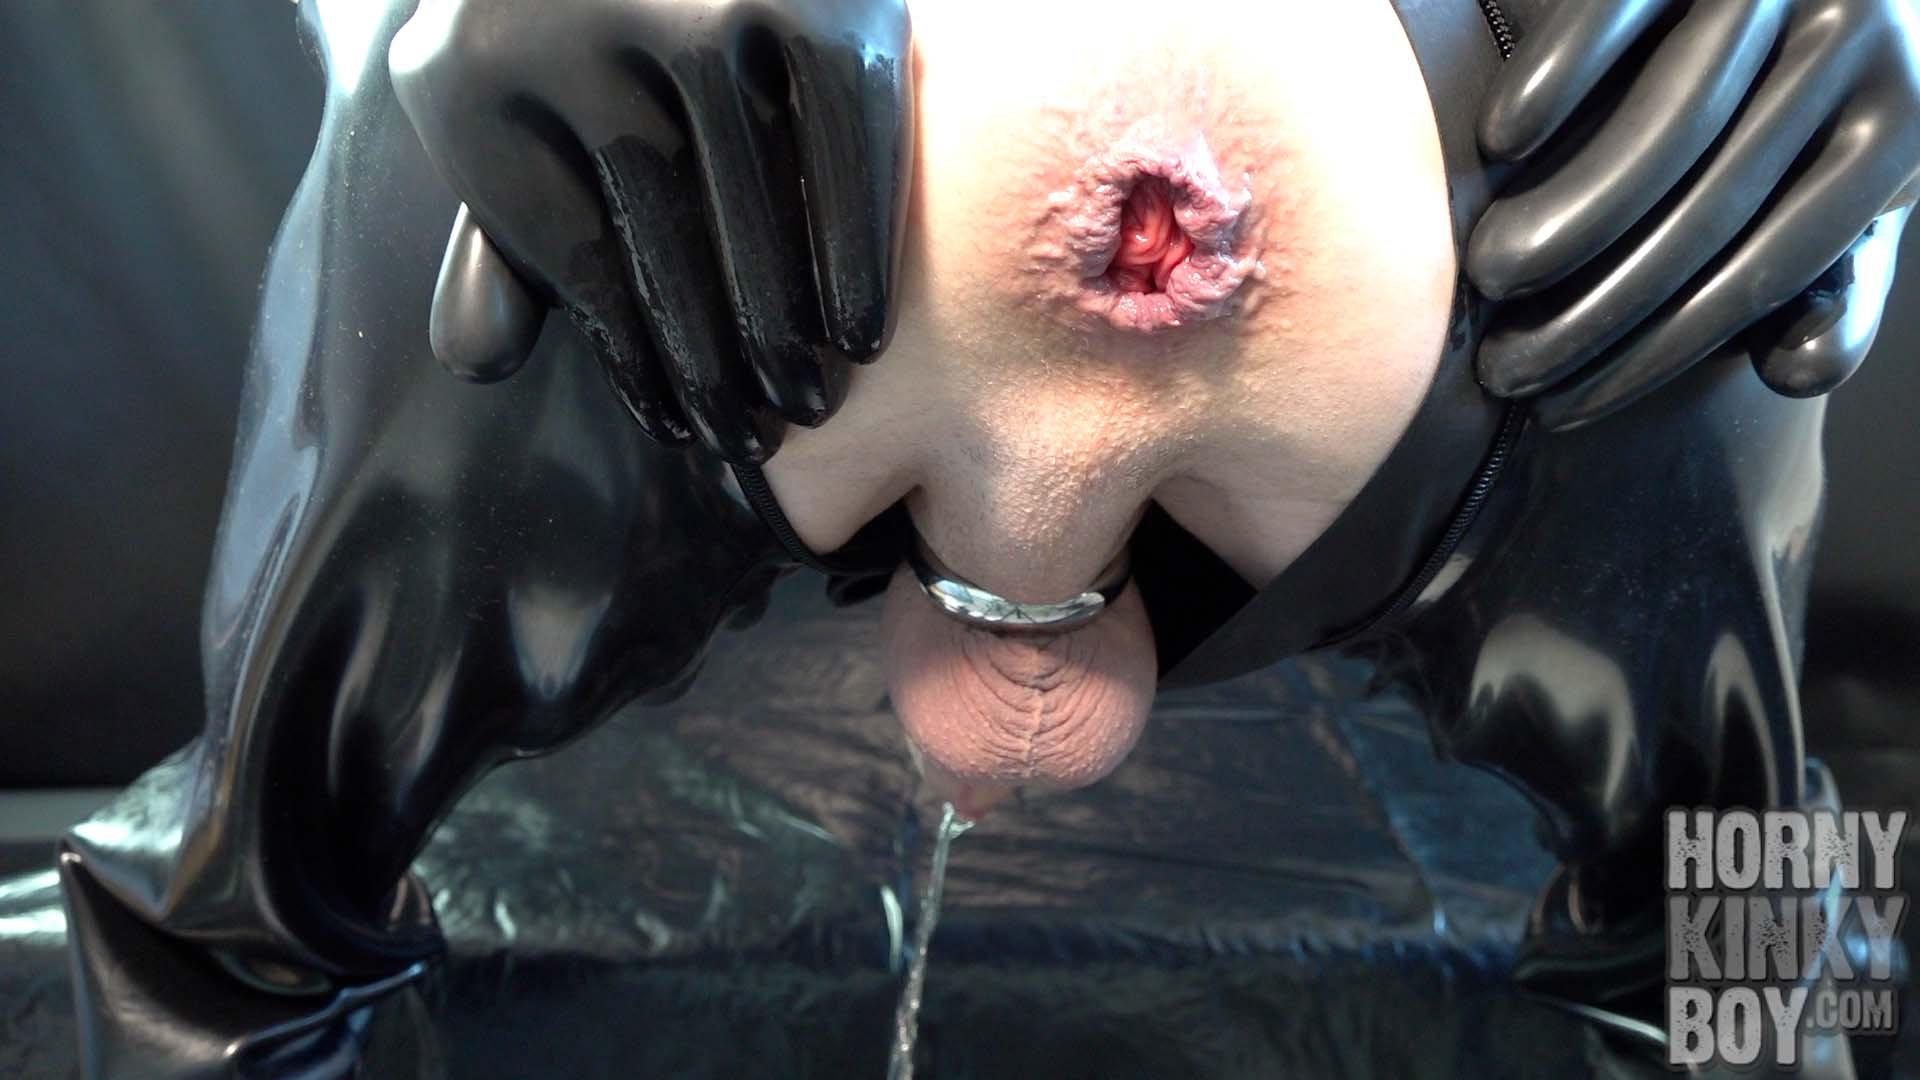 *** PRE SALE *** Anal Sphincter And Rosebud Training Reloaded